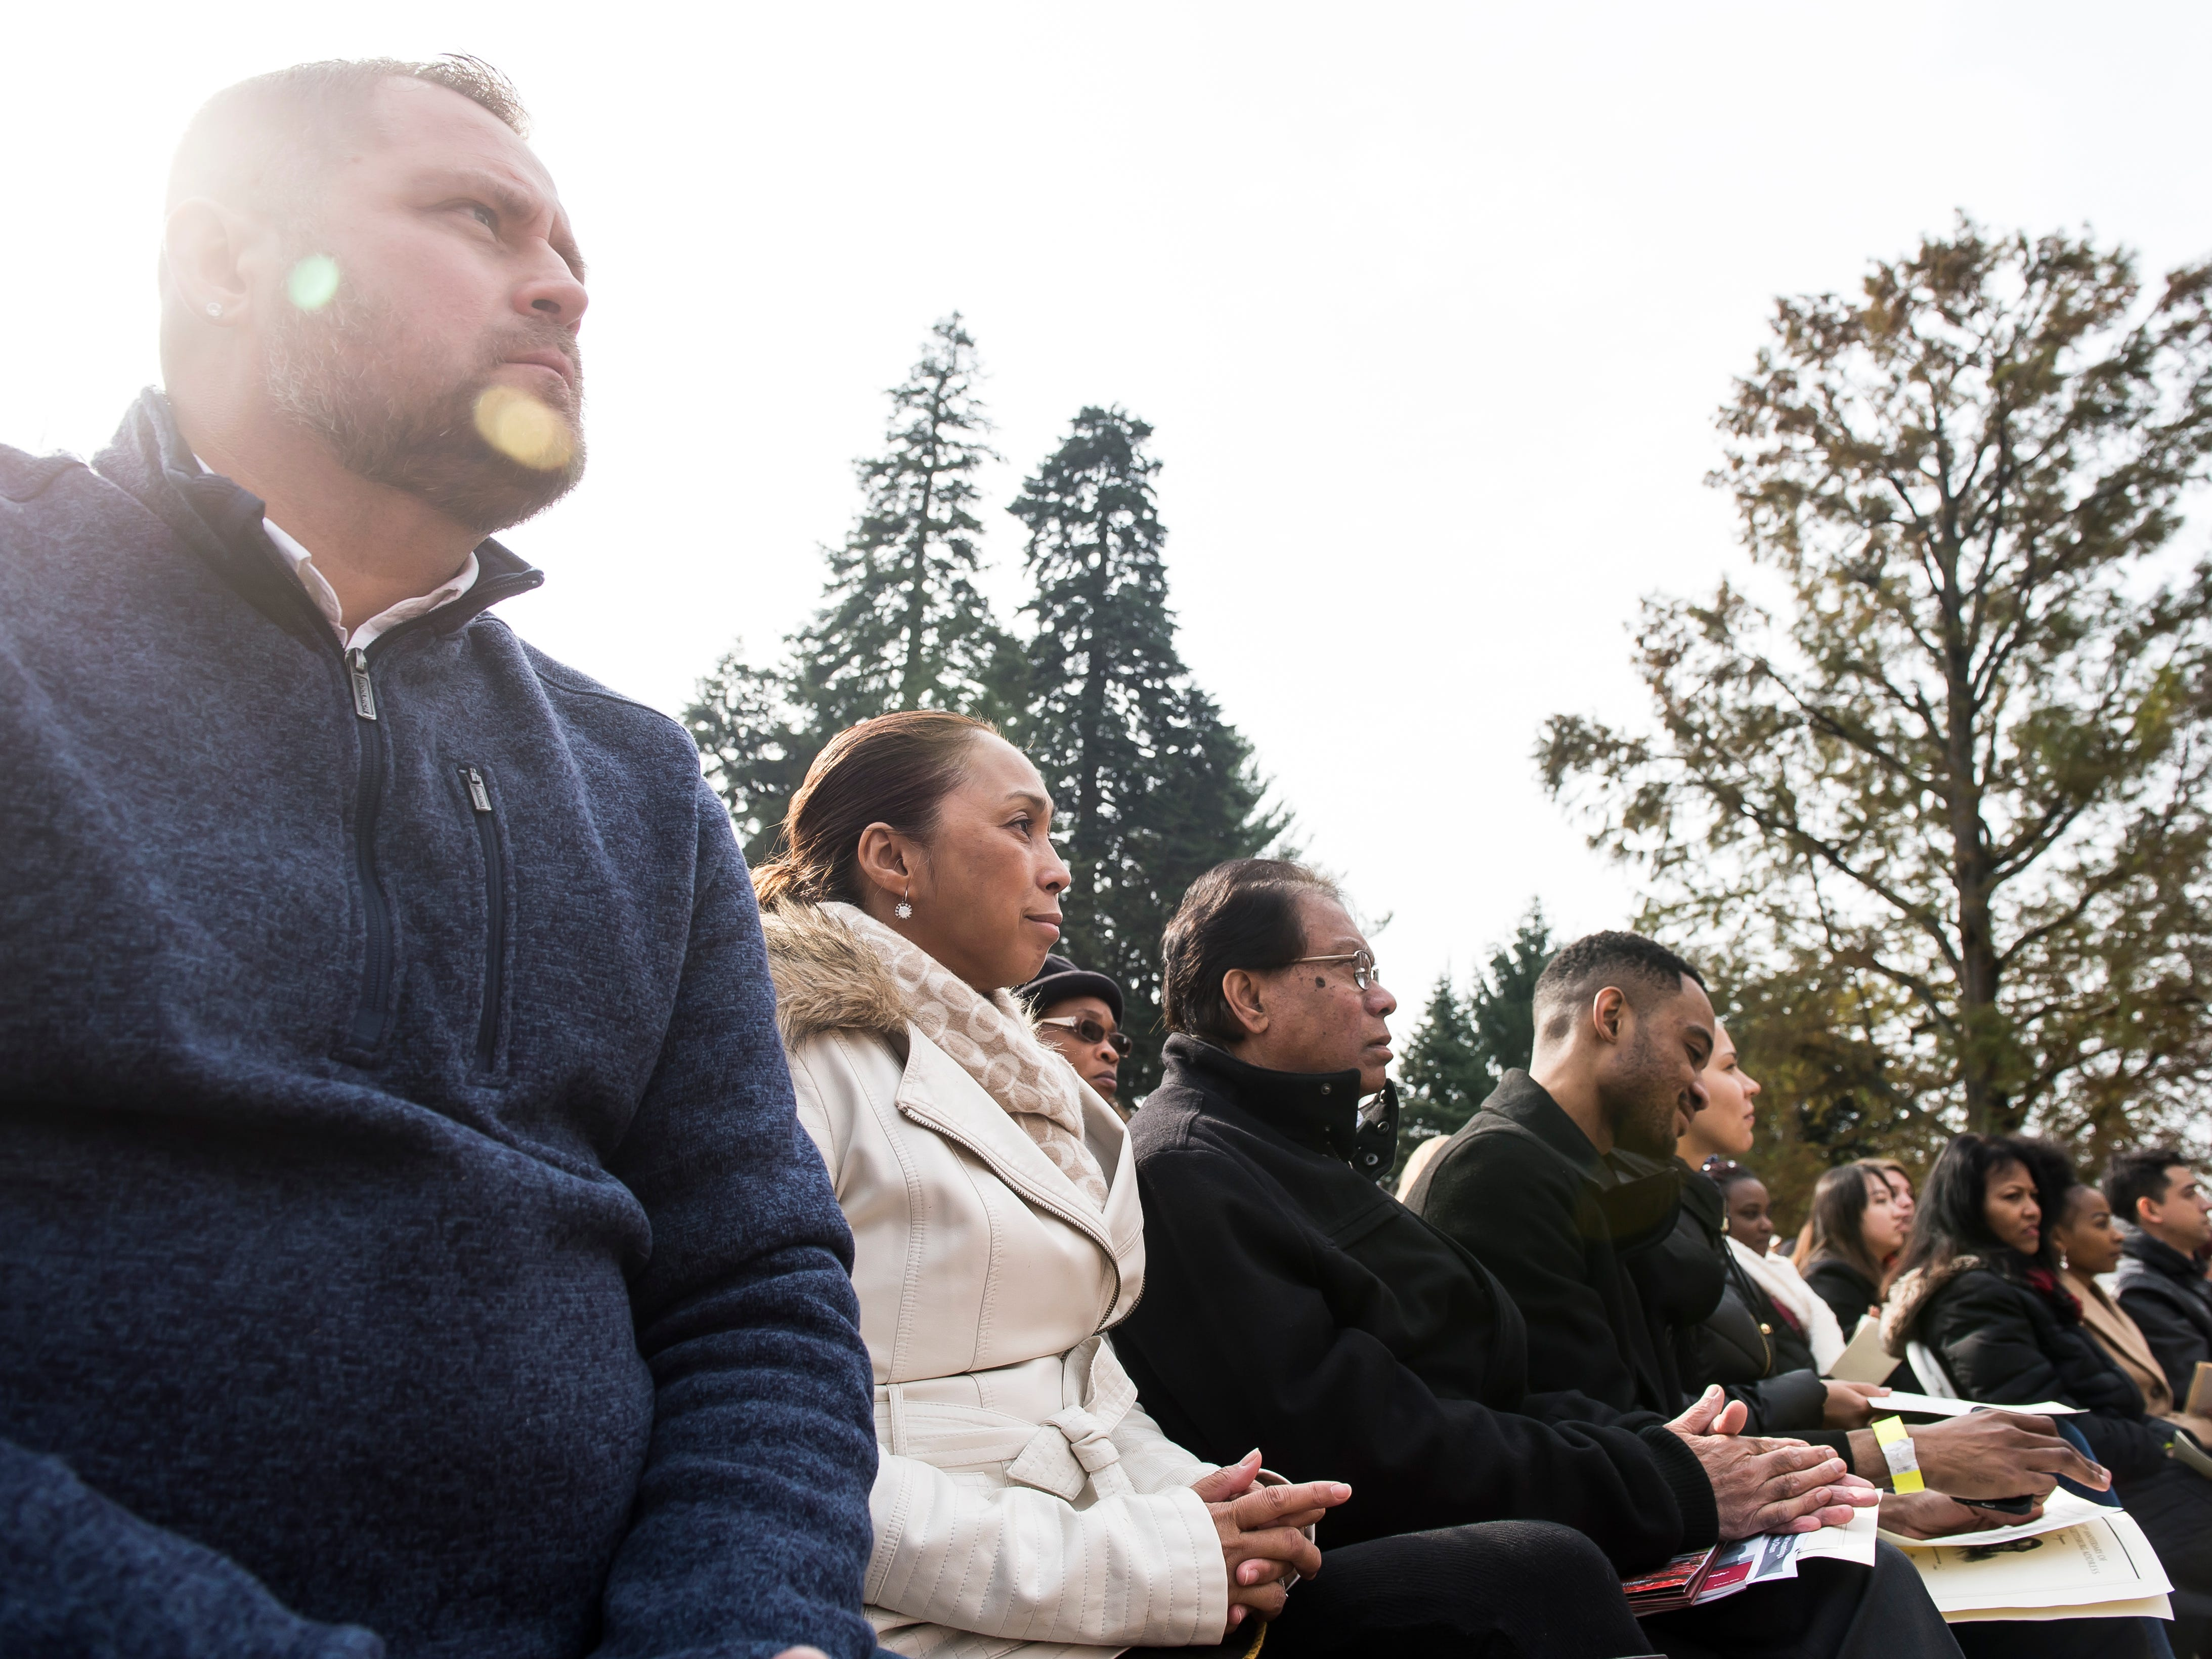 A group of soon-to-be U.S. citizens wait to take the Oath of Allegiance during a naturalization ceremony on Dedication Day in Gettysburg on November, 19, 2018.